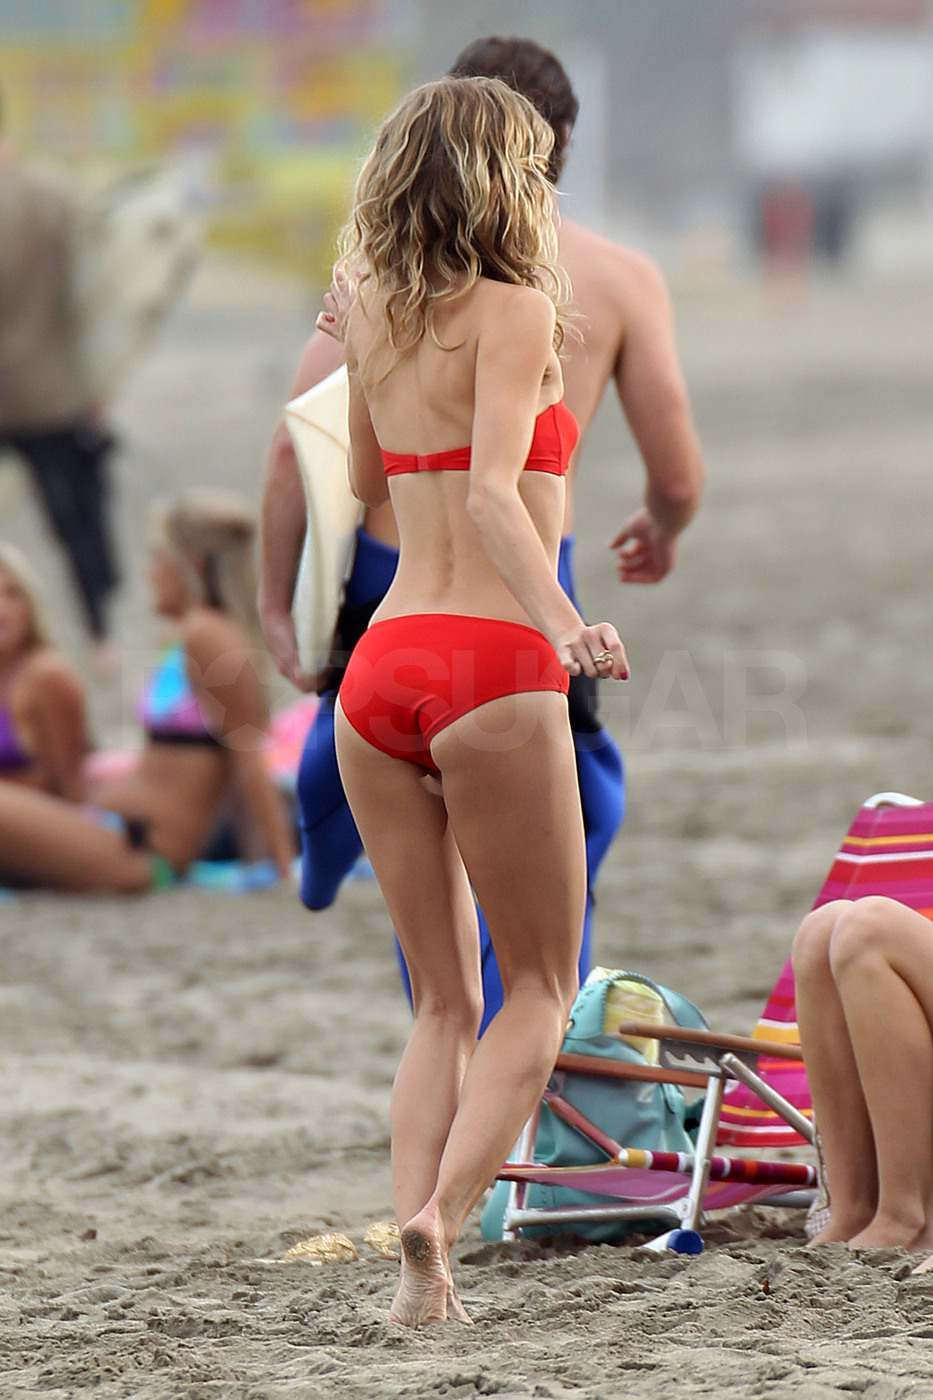 Pictures of annalynne mccord jessica stroup jessica lowndes in